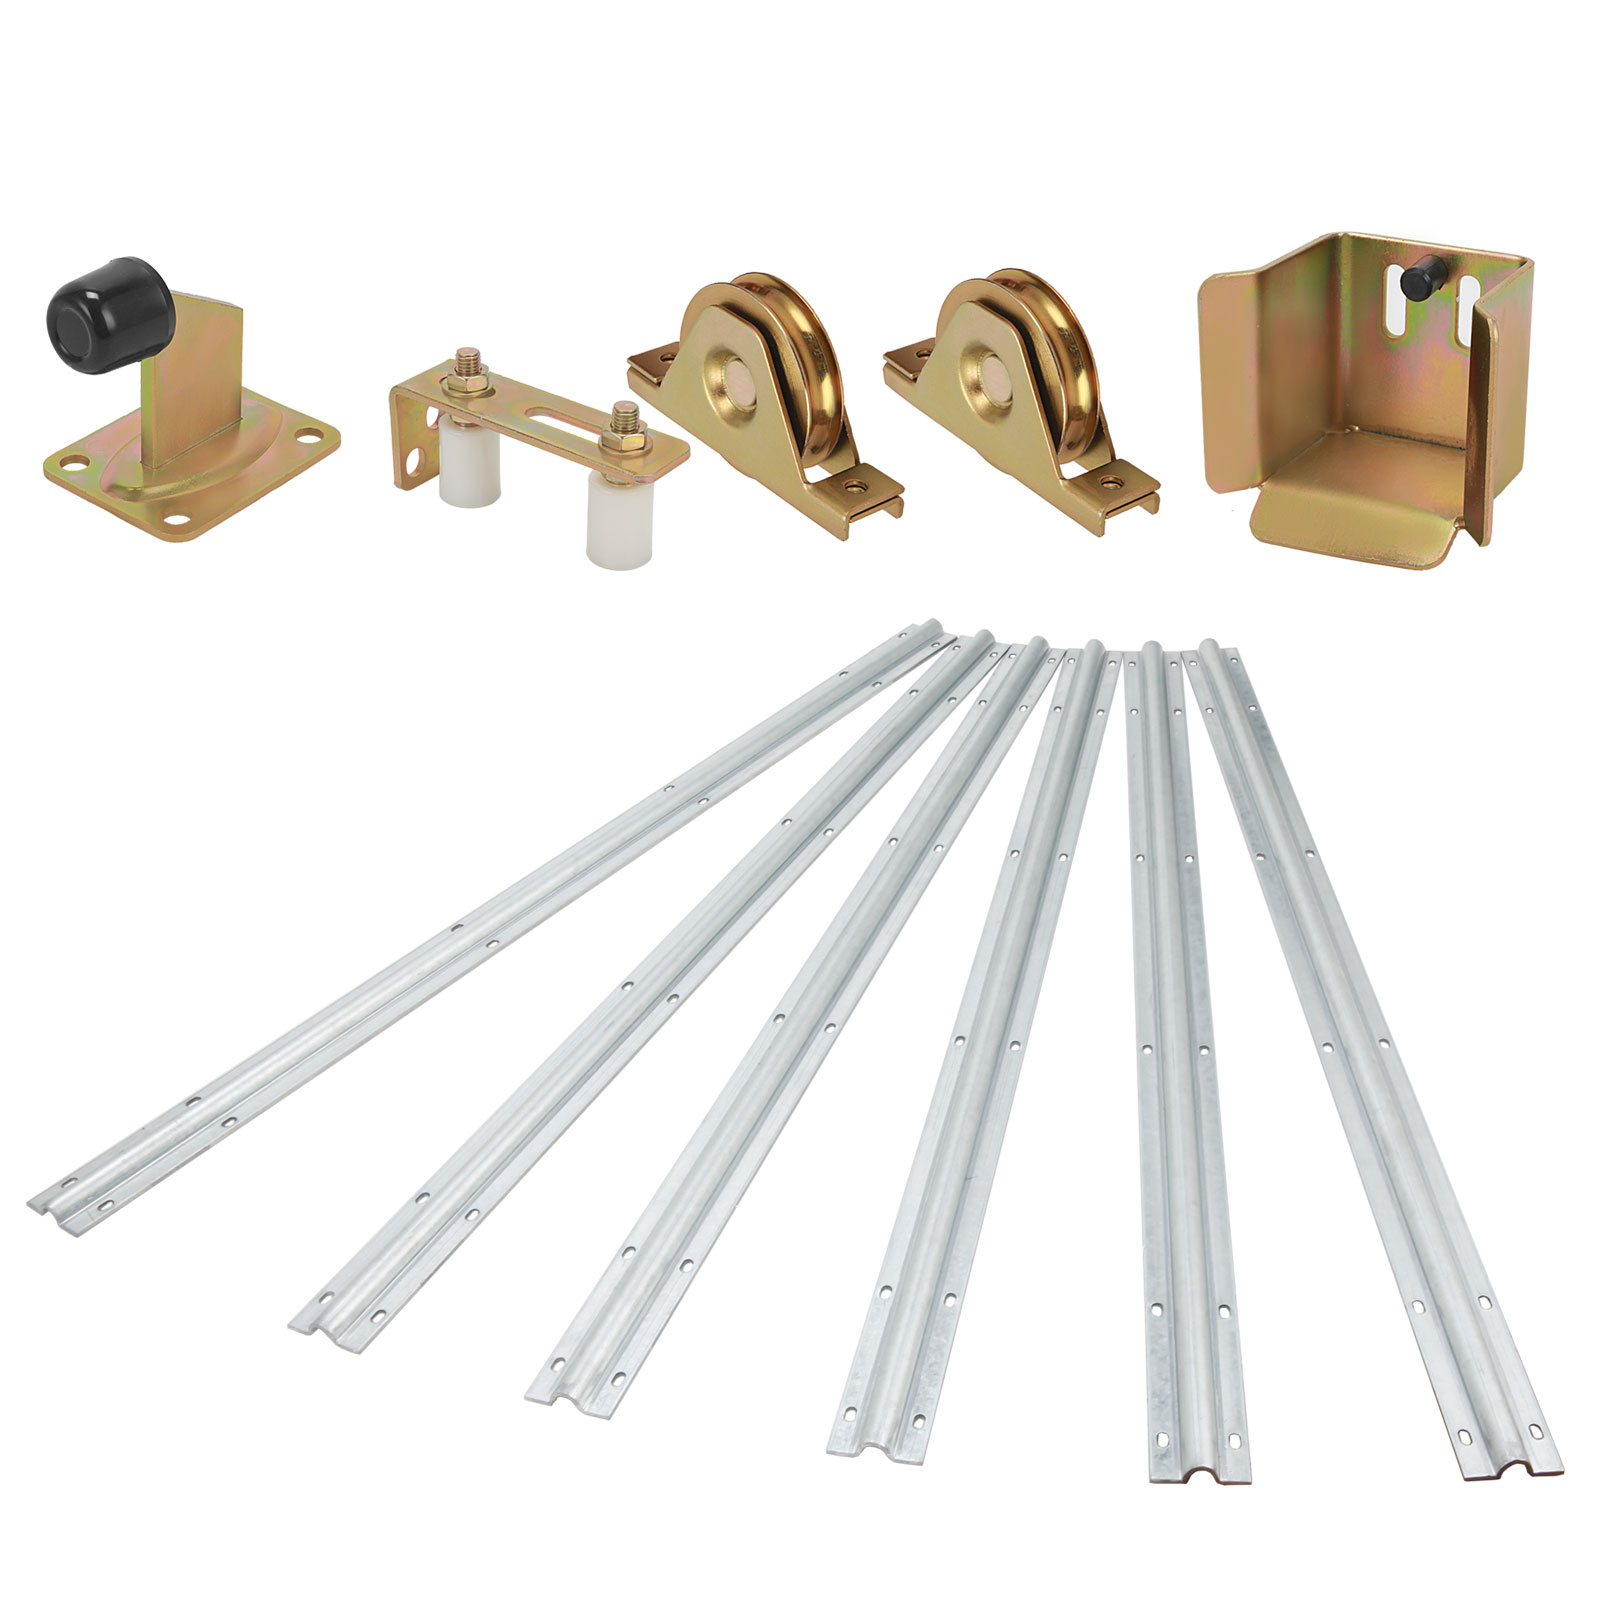 Sliding gate hardware accessories kit roller track stopper